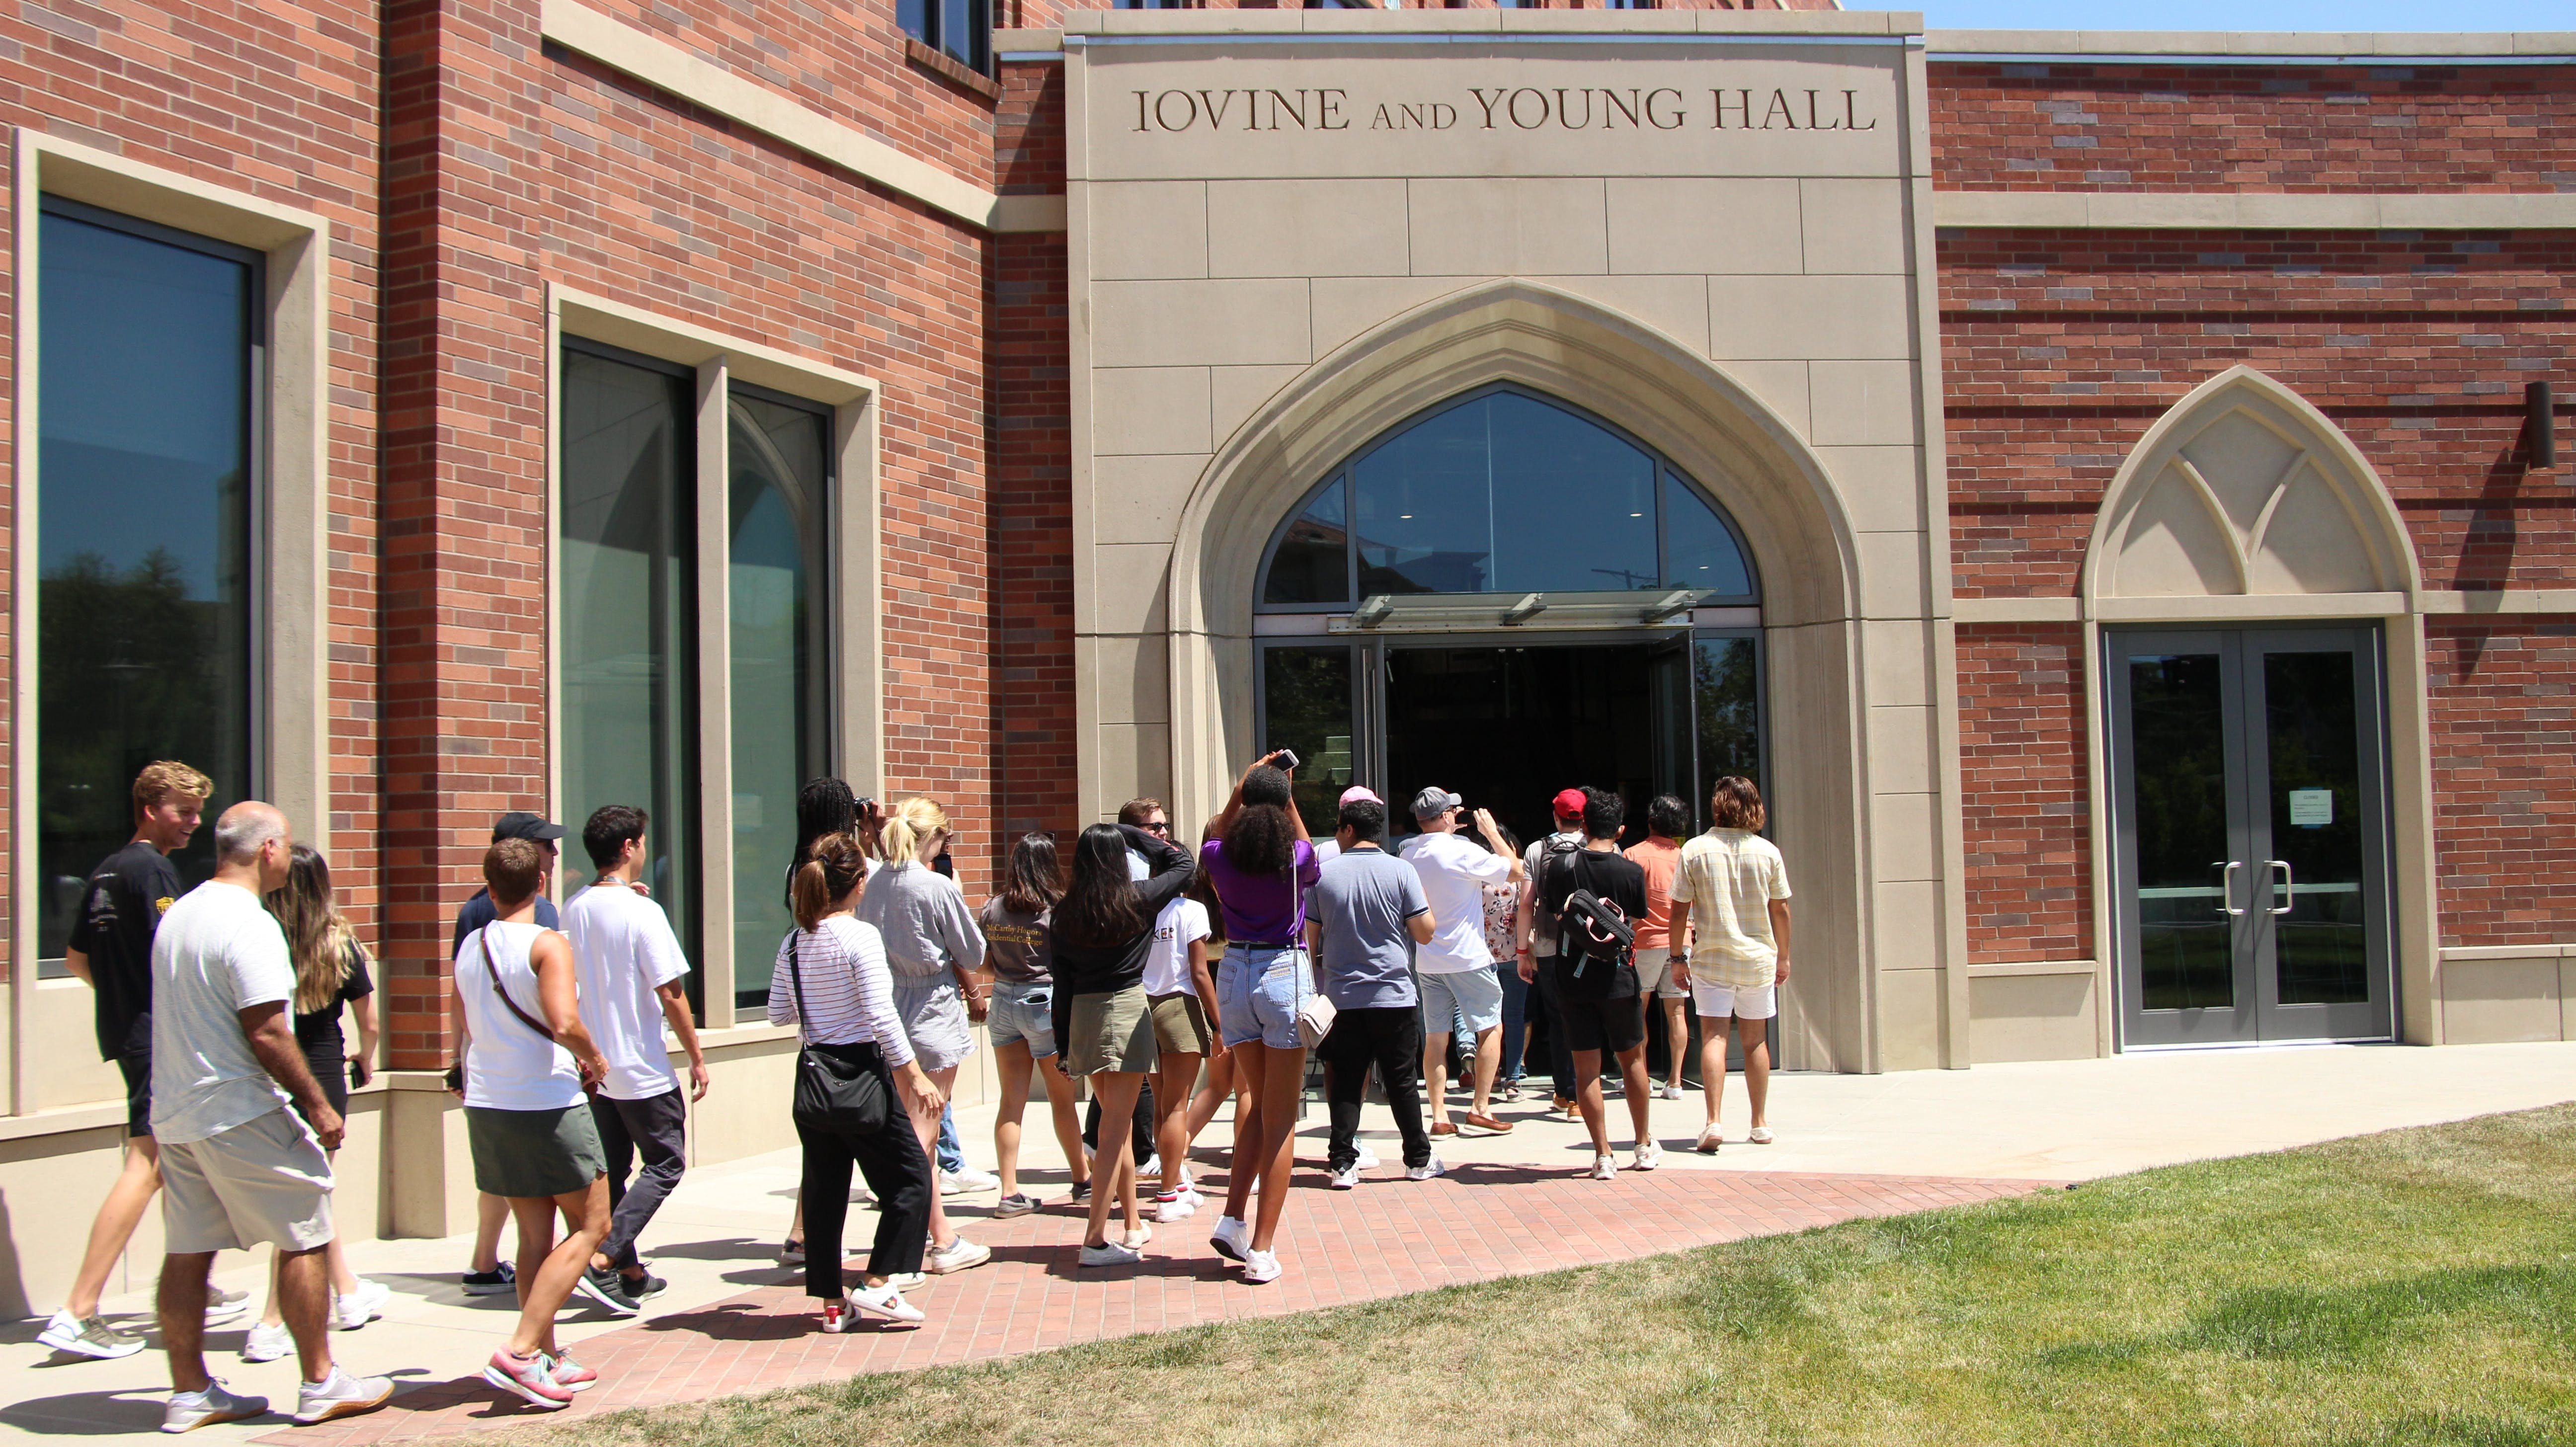 Students visiting Iovine and Young Hall